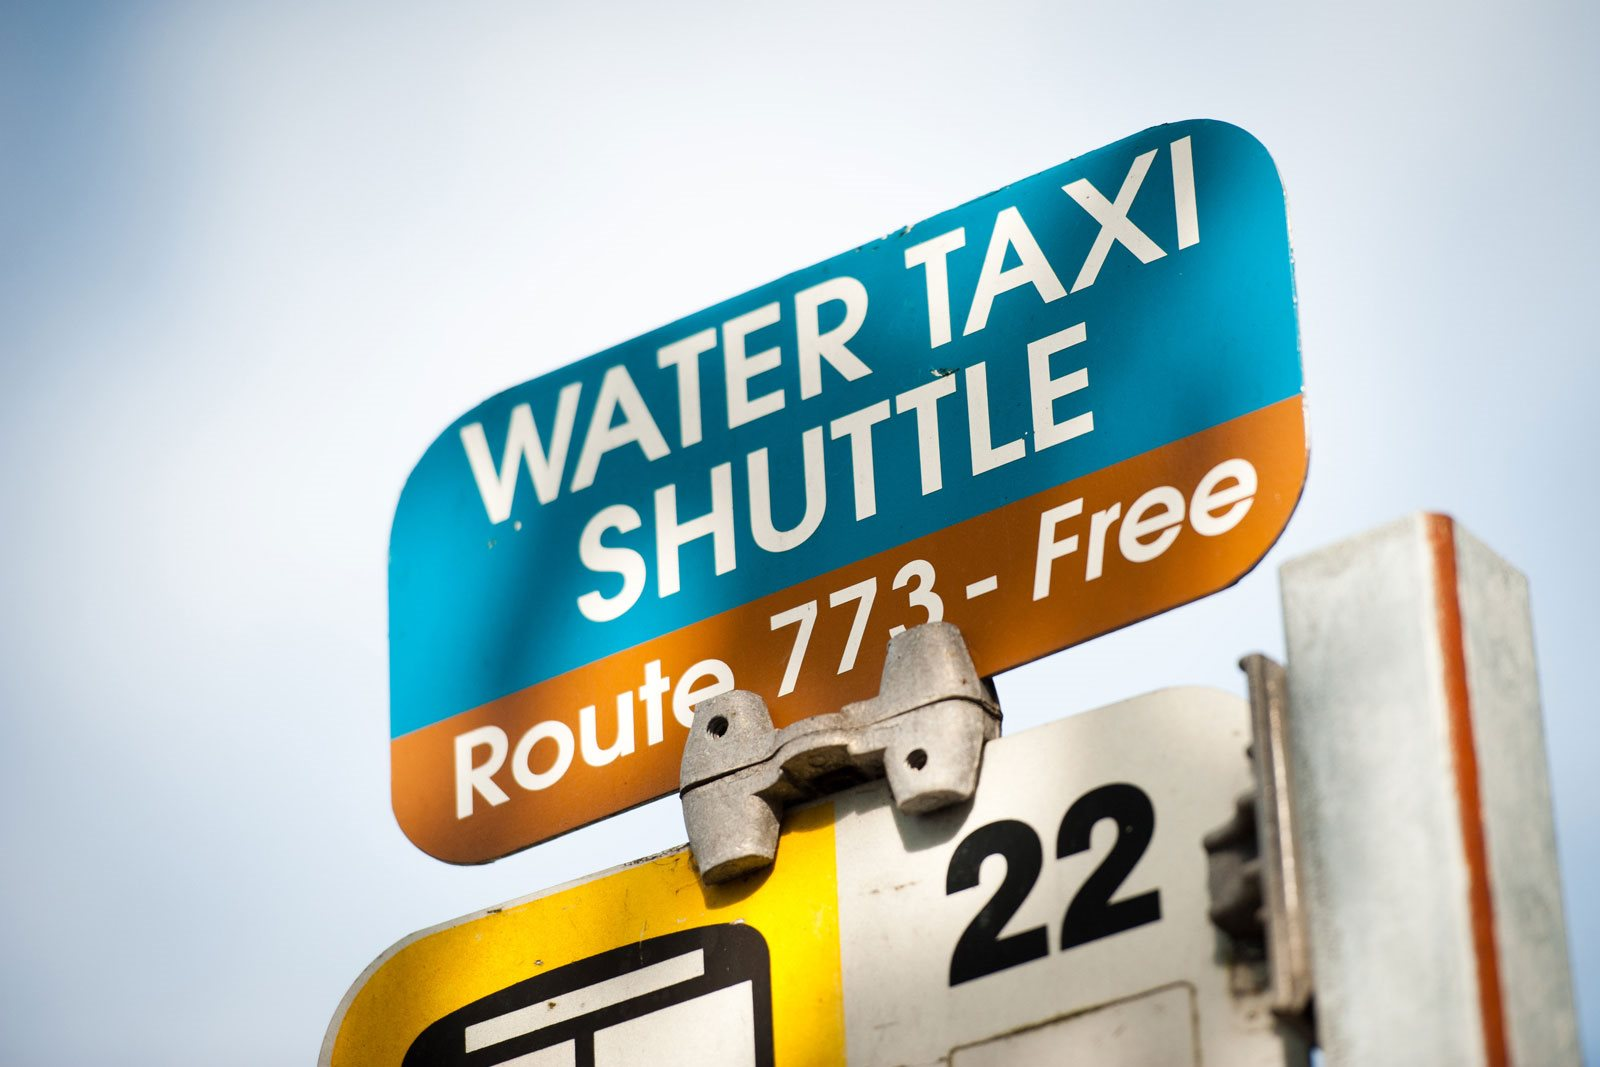 Water Taxi to Downtown near The Whittaker, 4755 Fauntleroy Way, Seattle